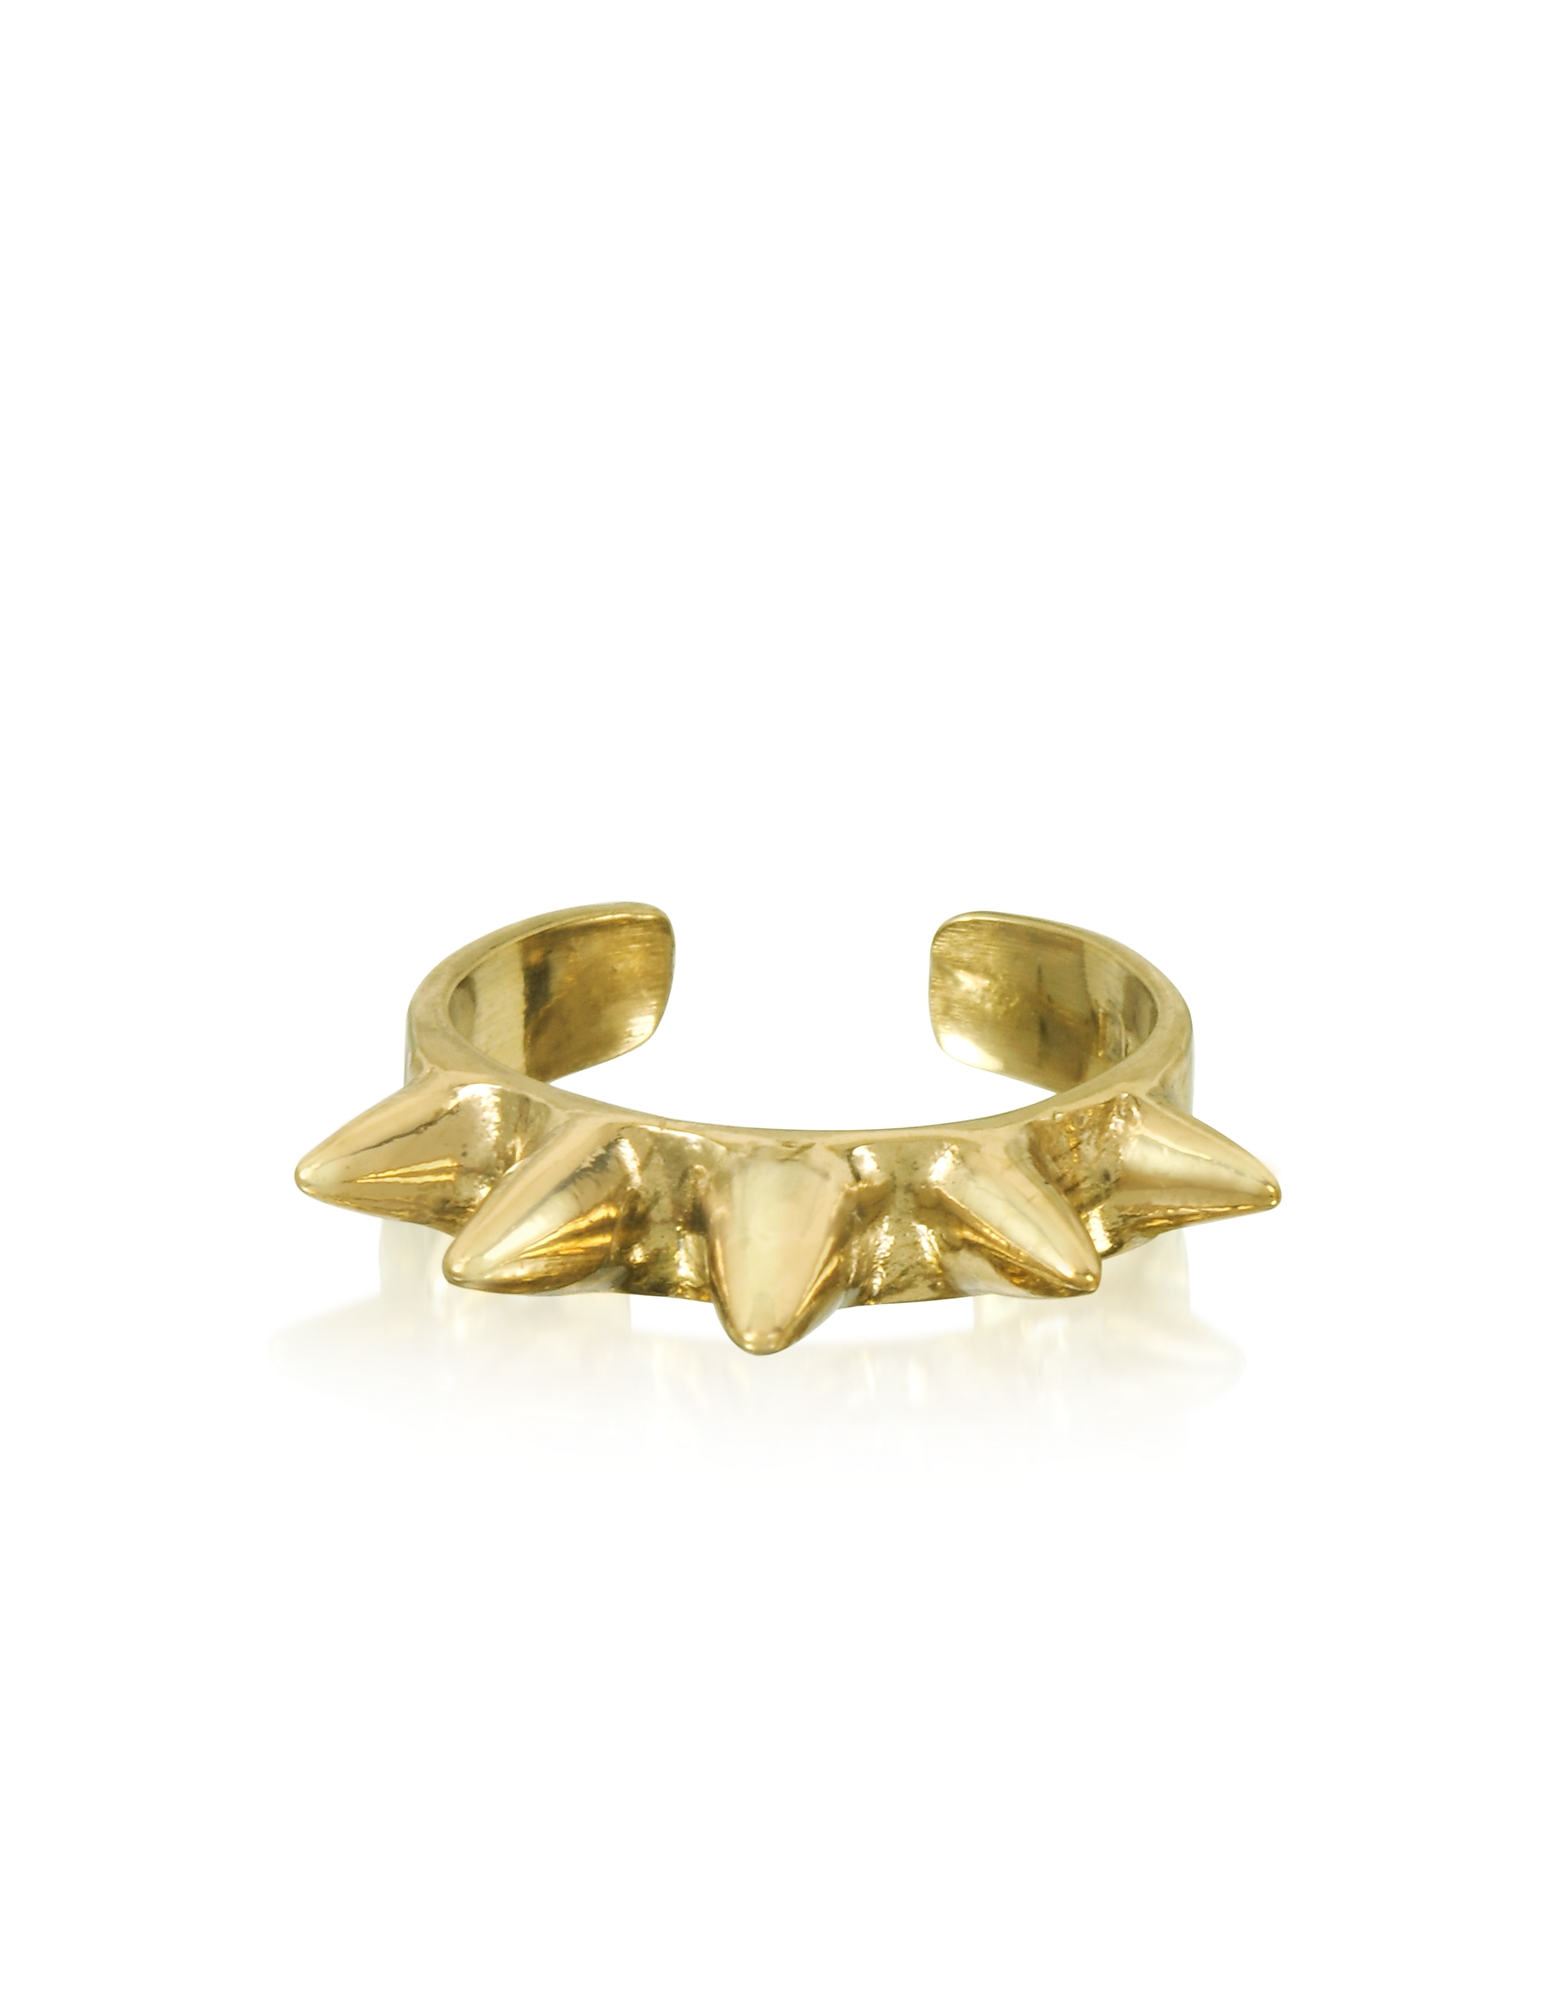 Bernard Delettrez Rings, Single Band Bronze Ring w/Spikes